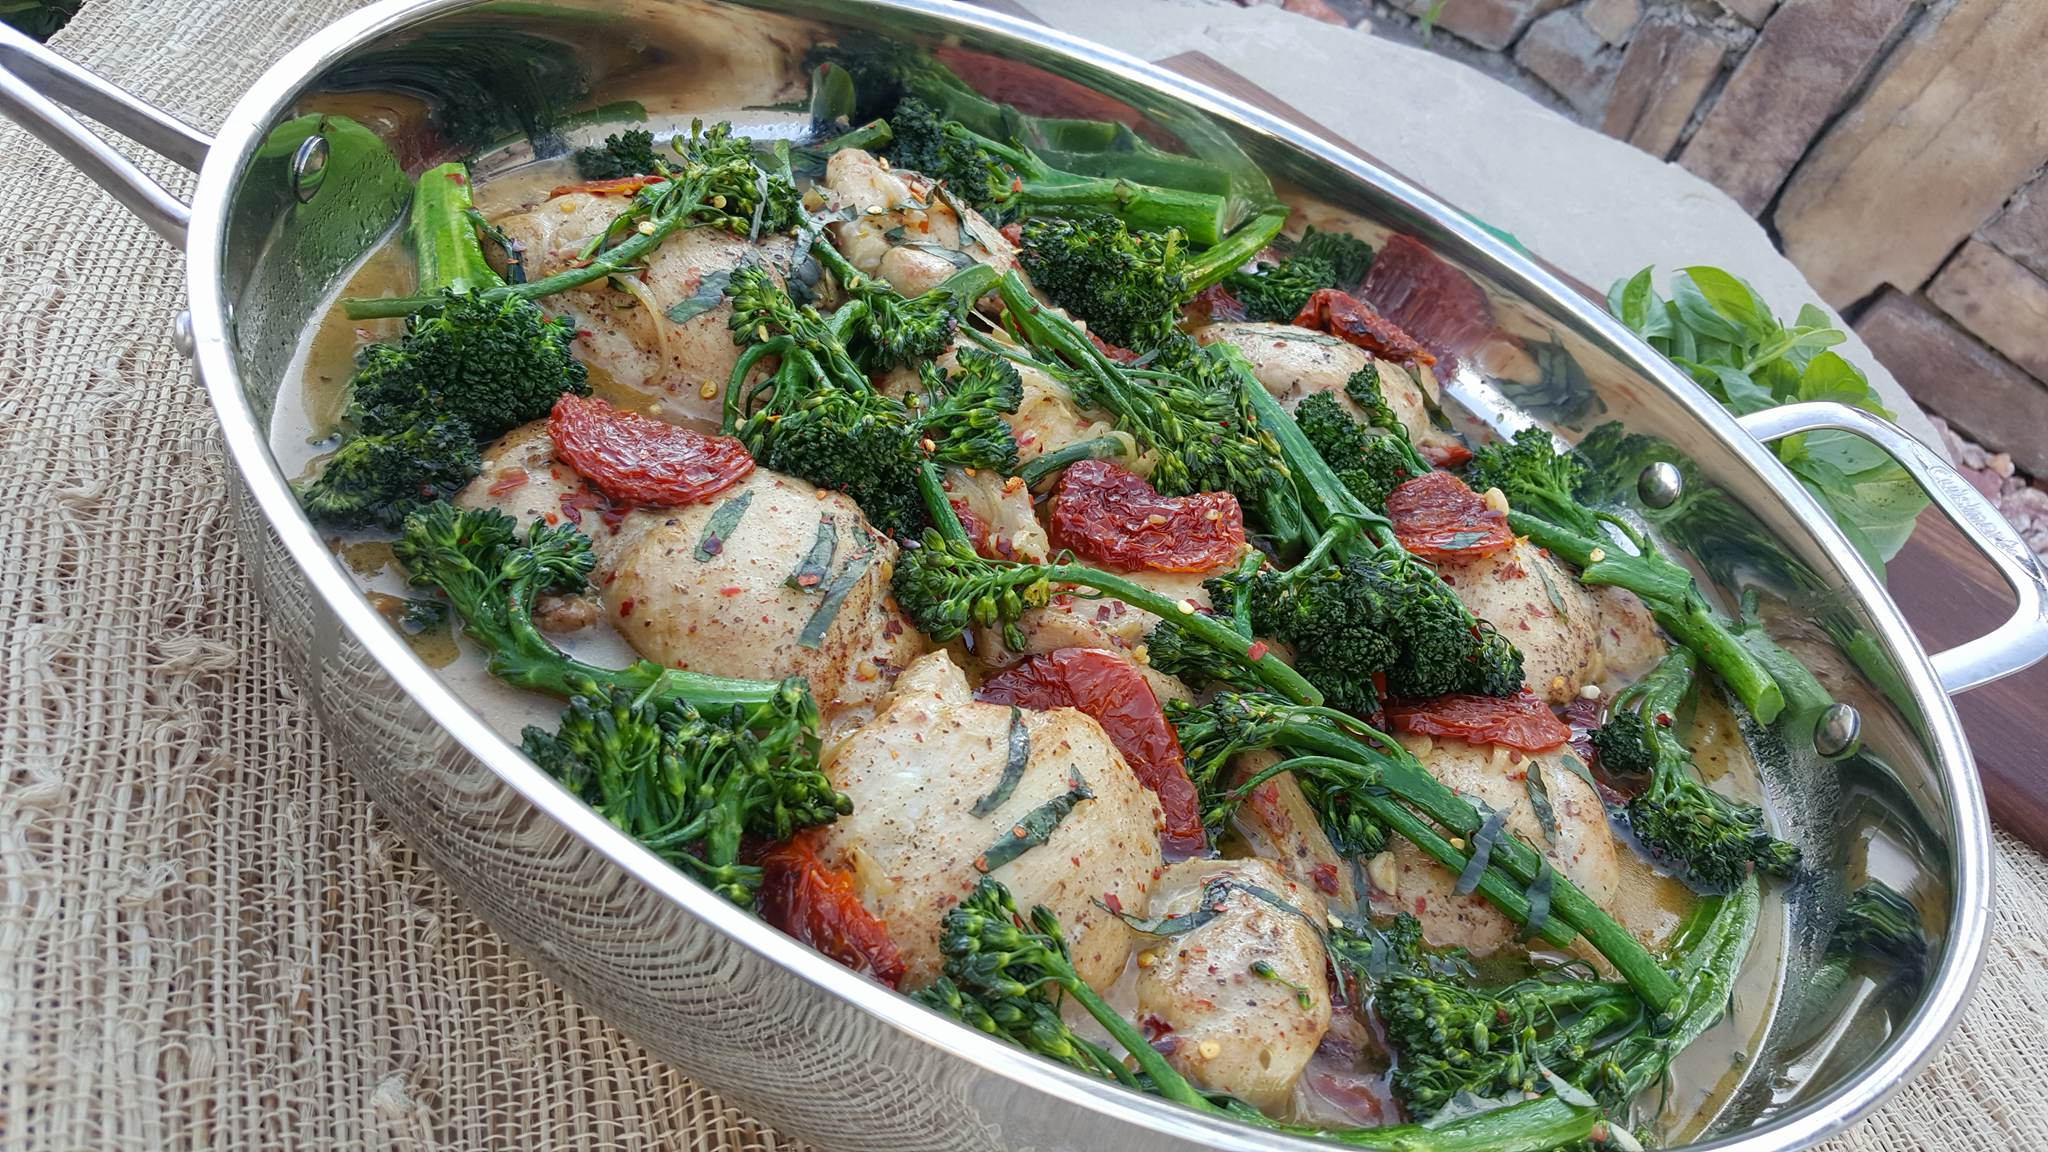 CleanFoodCrush Sundried Tomato Chicken thighs with Broccolini https://cleanfoodcrush.com/sundried-tomato-chicken/